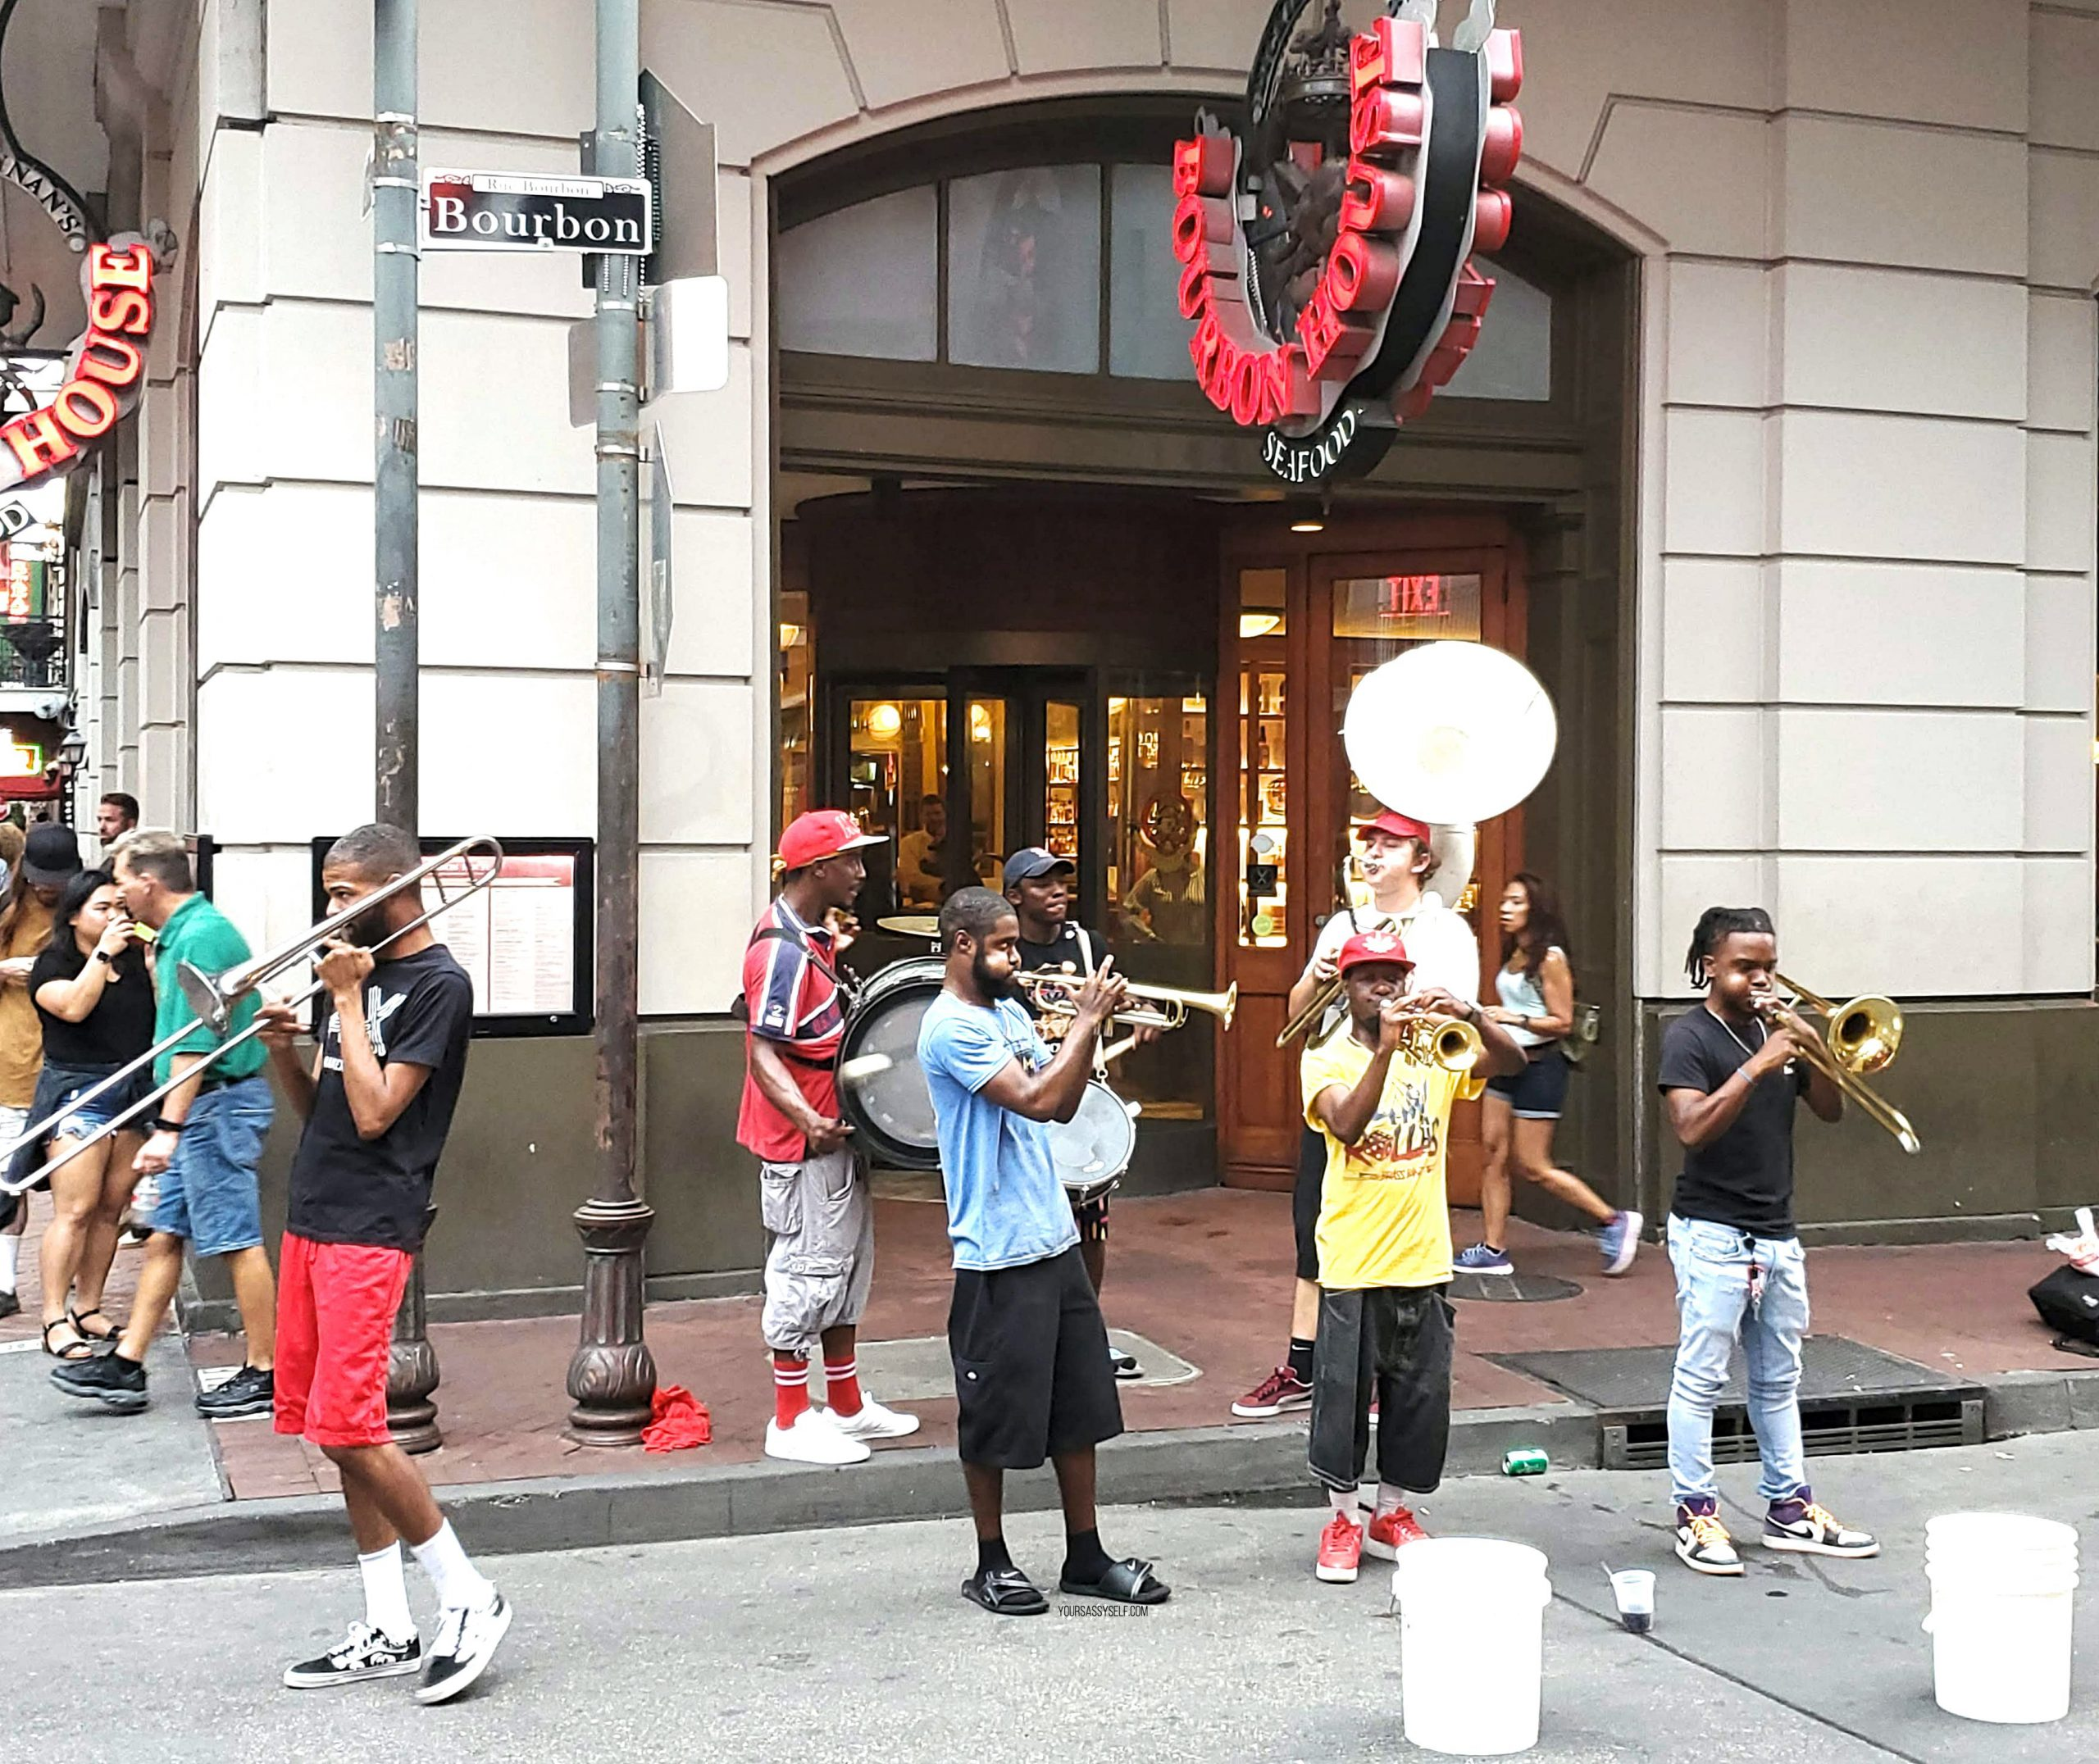 Musicians on Bourbon Street - yoursassyself.com